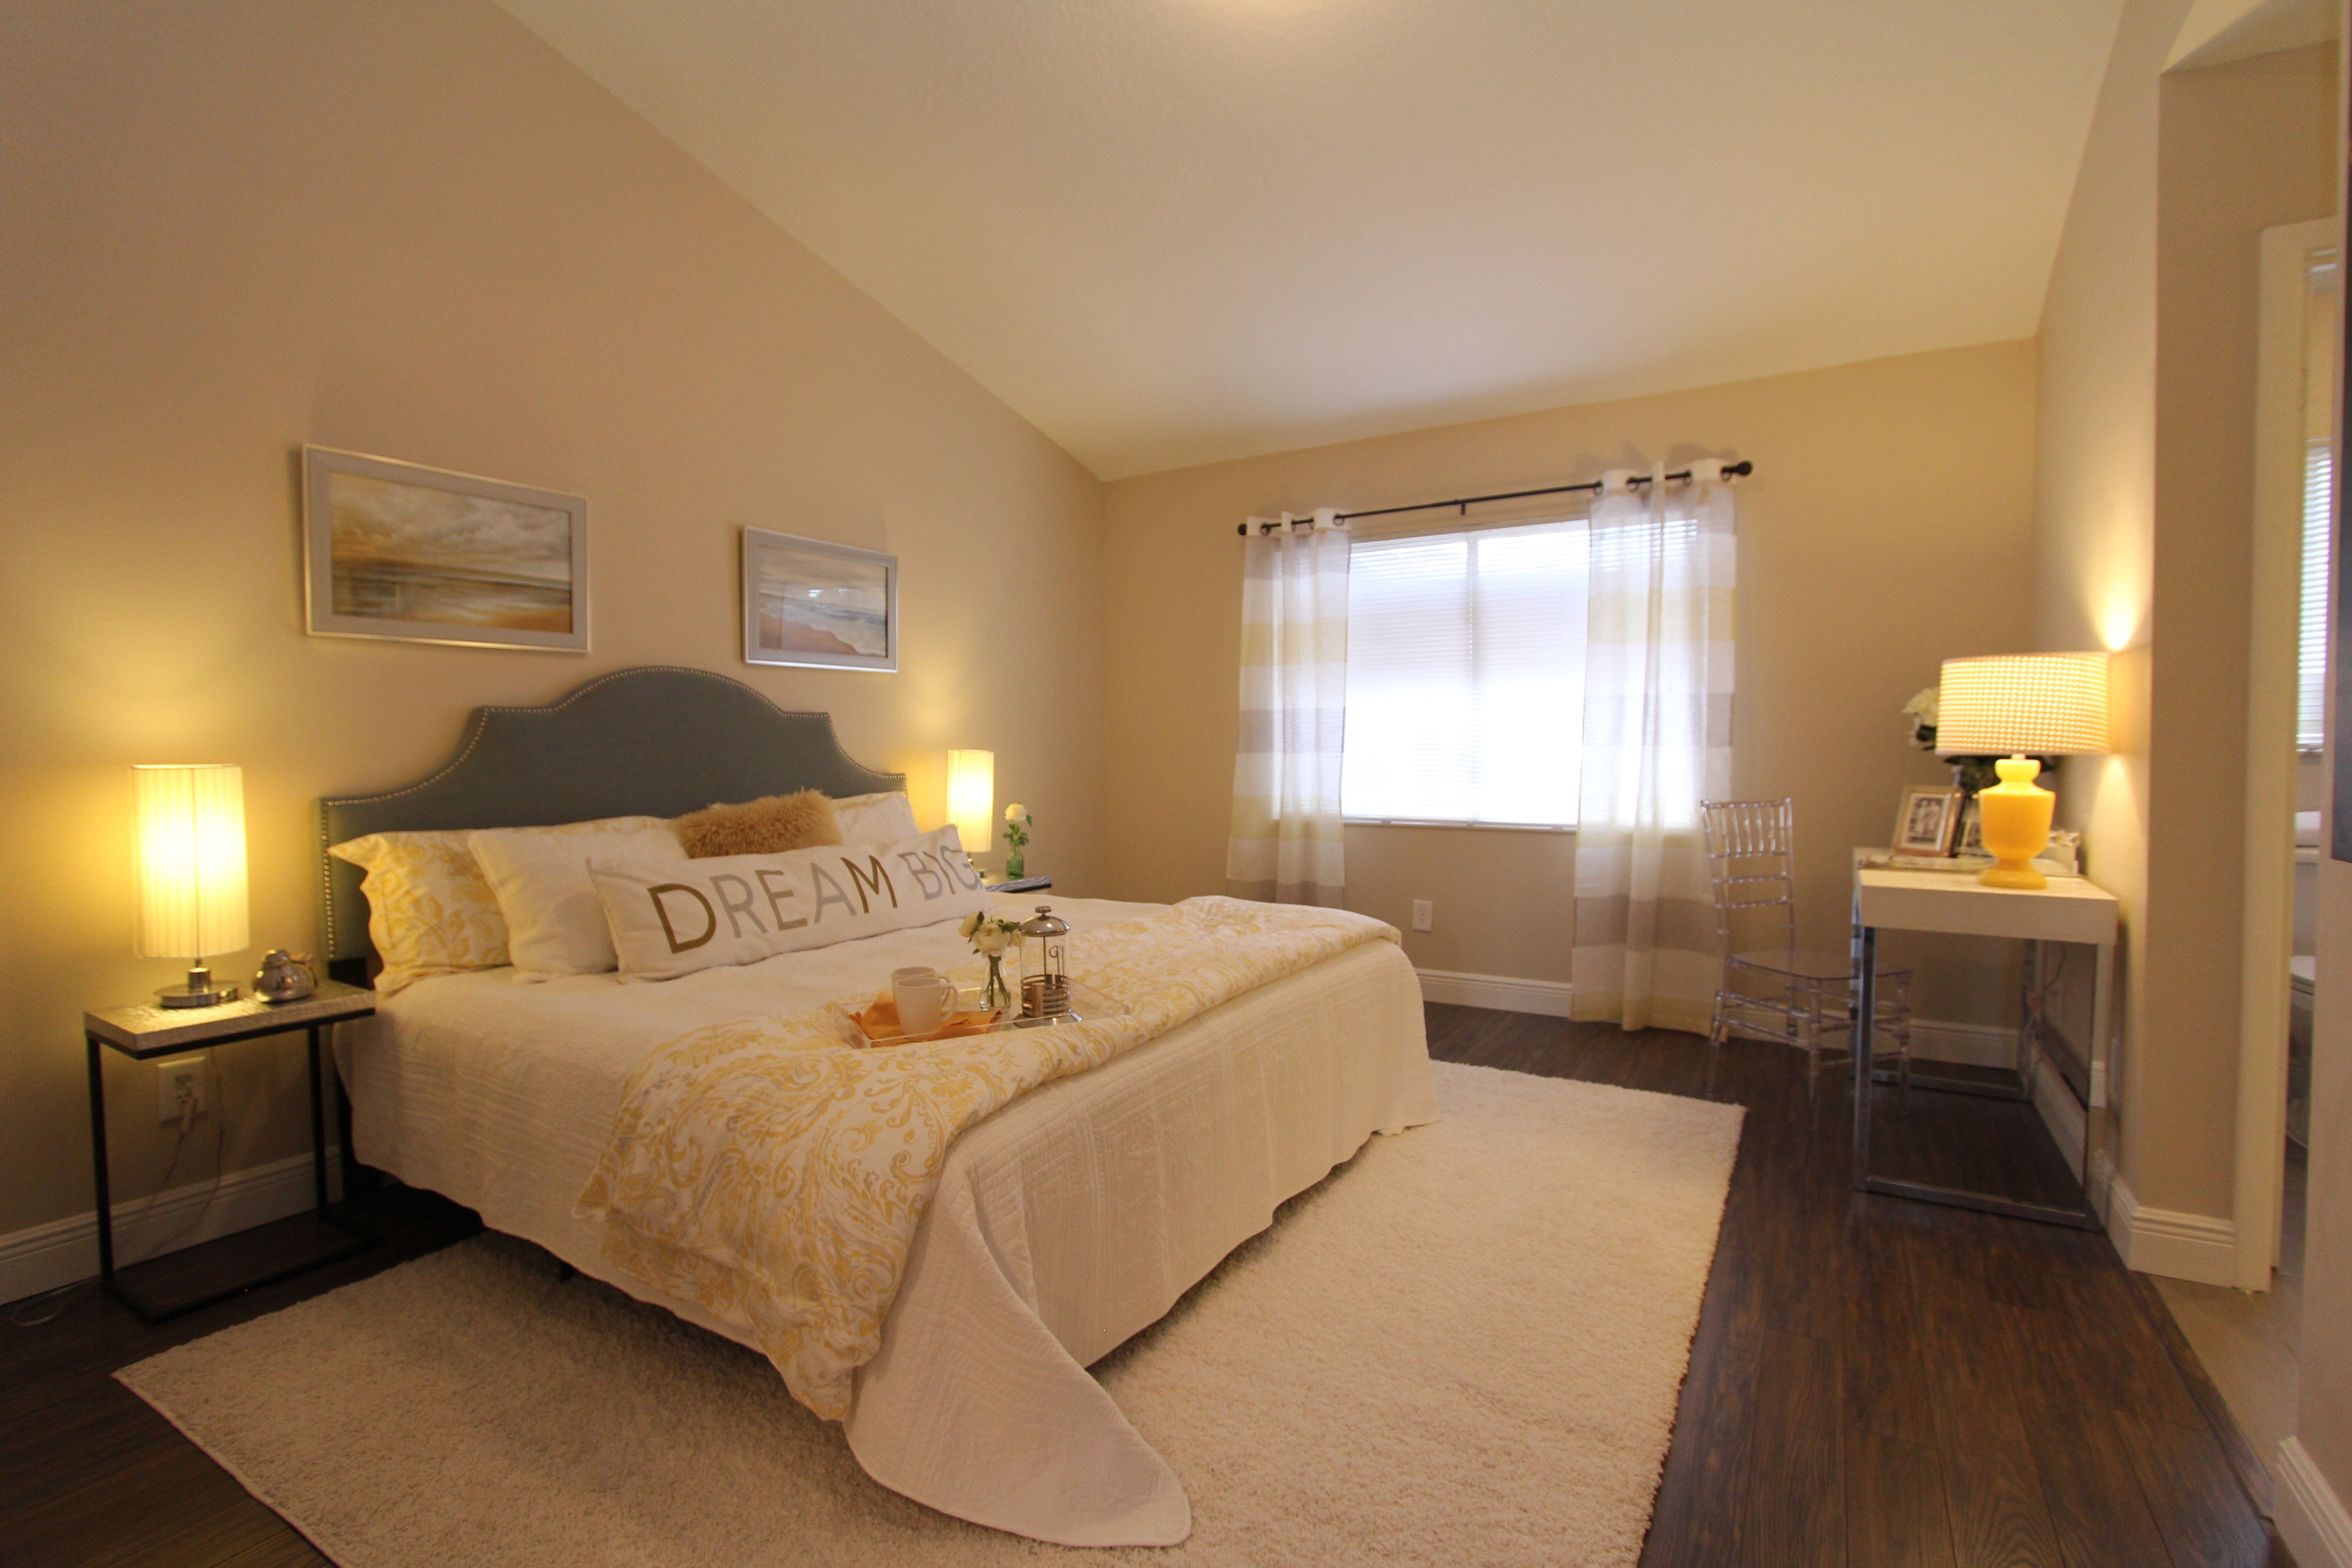 Master bedroom soft fabrics and calming neutrals prevail